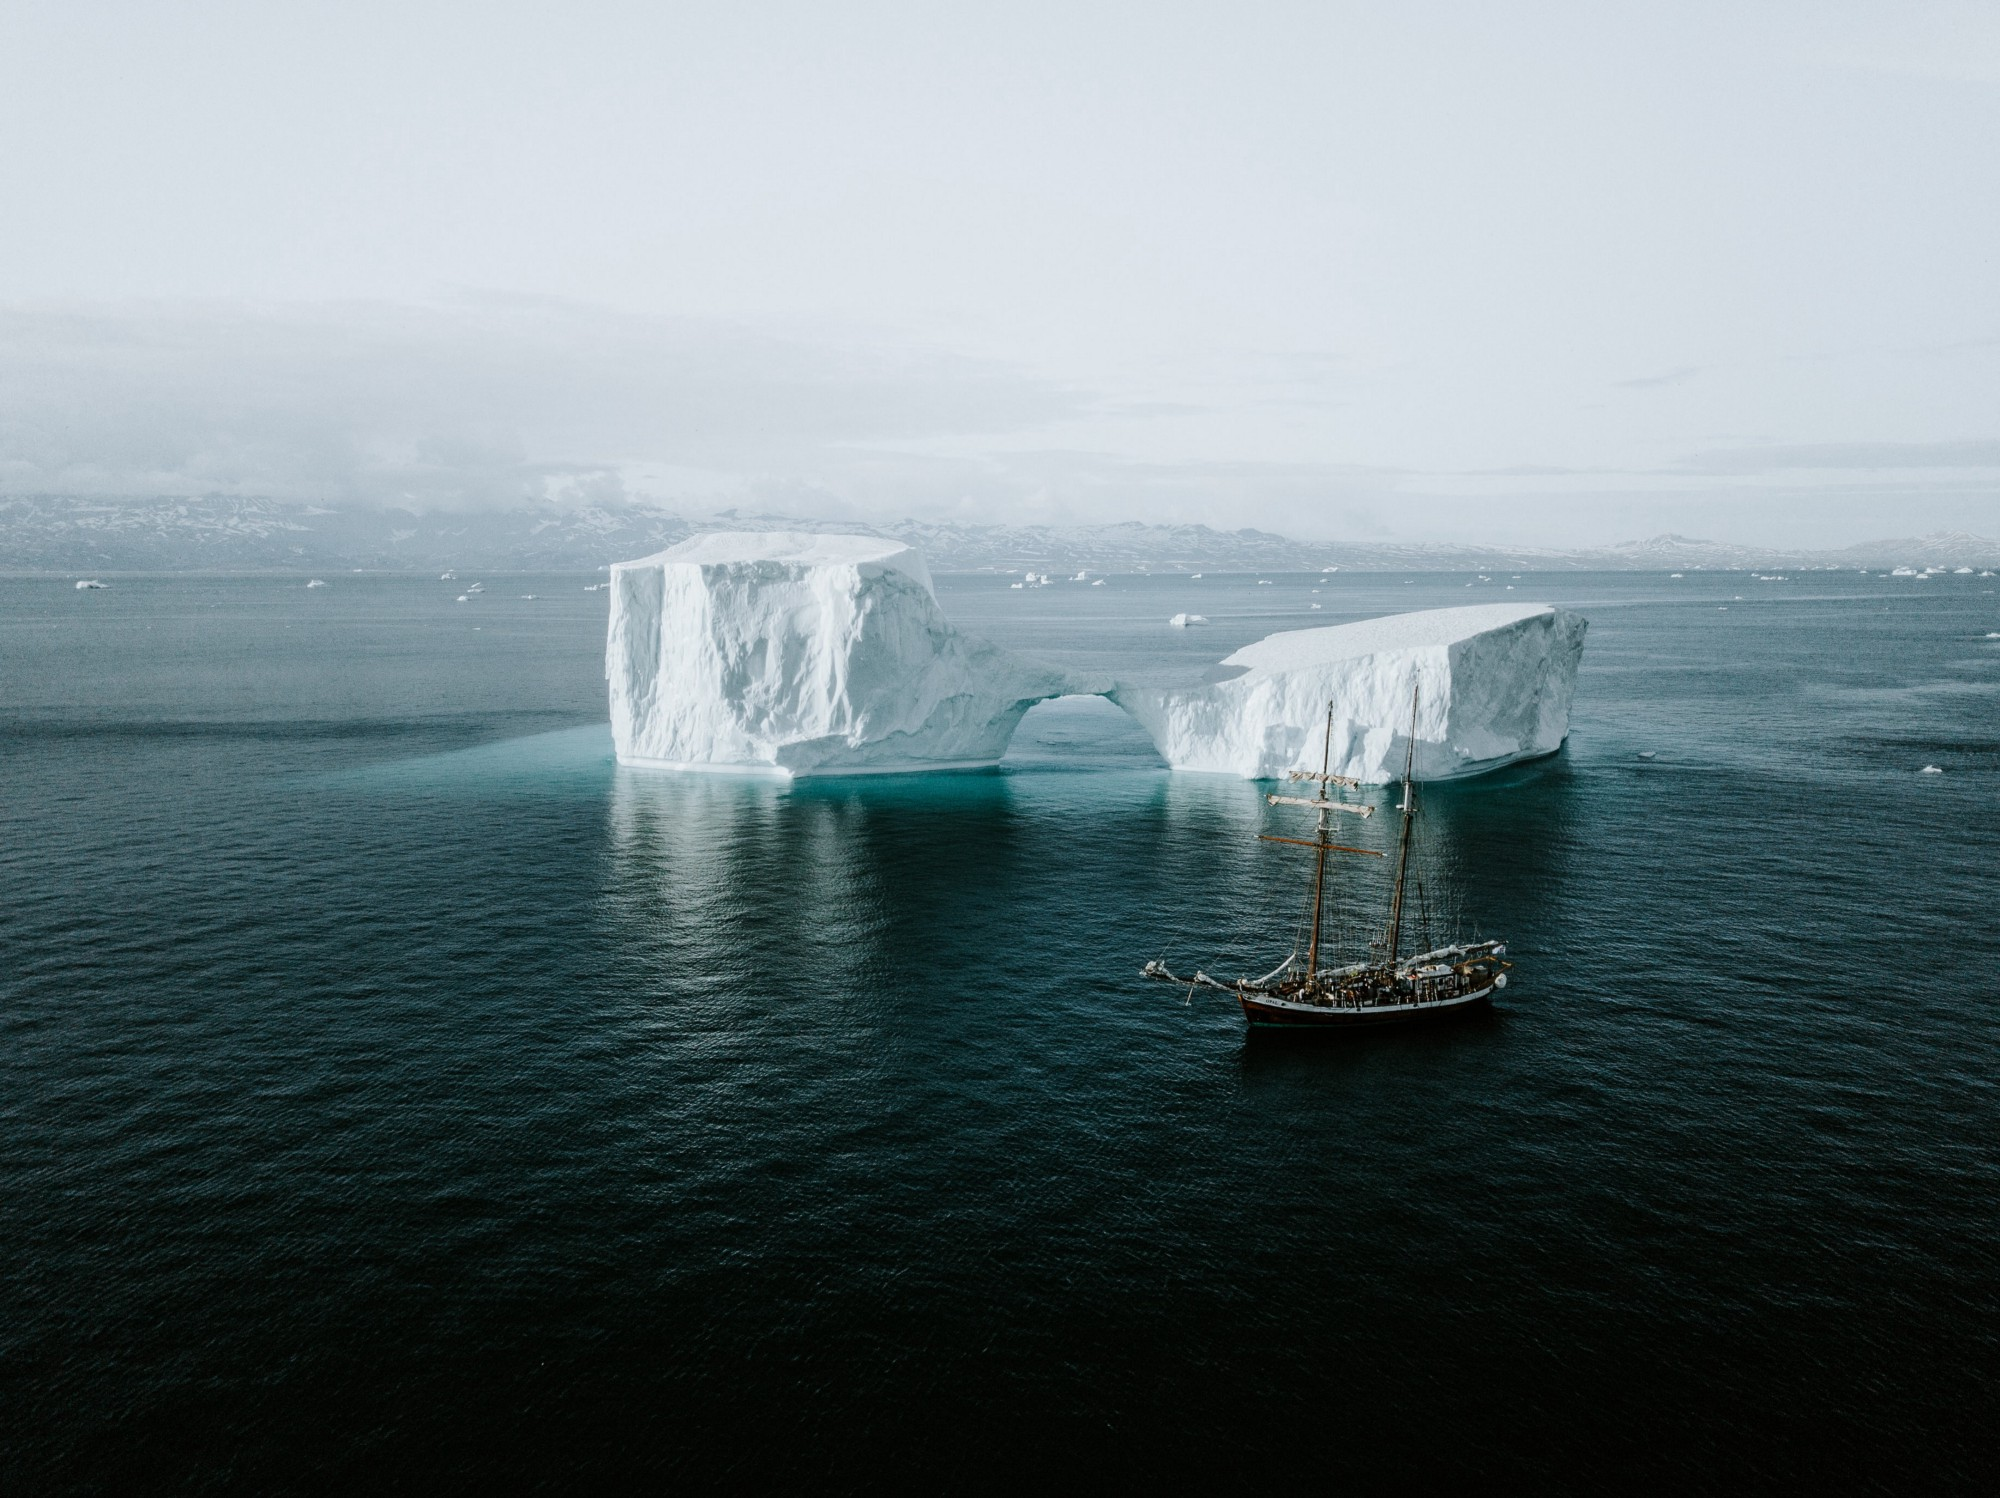 Boat floating by icebergs